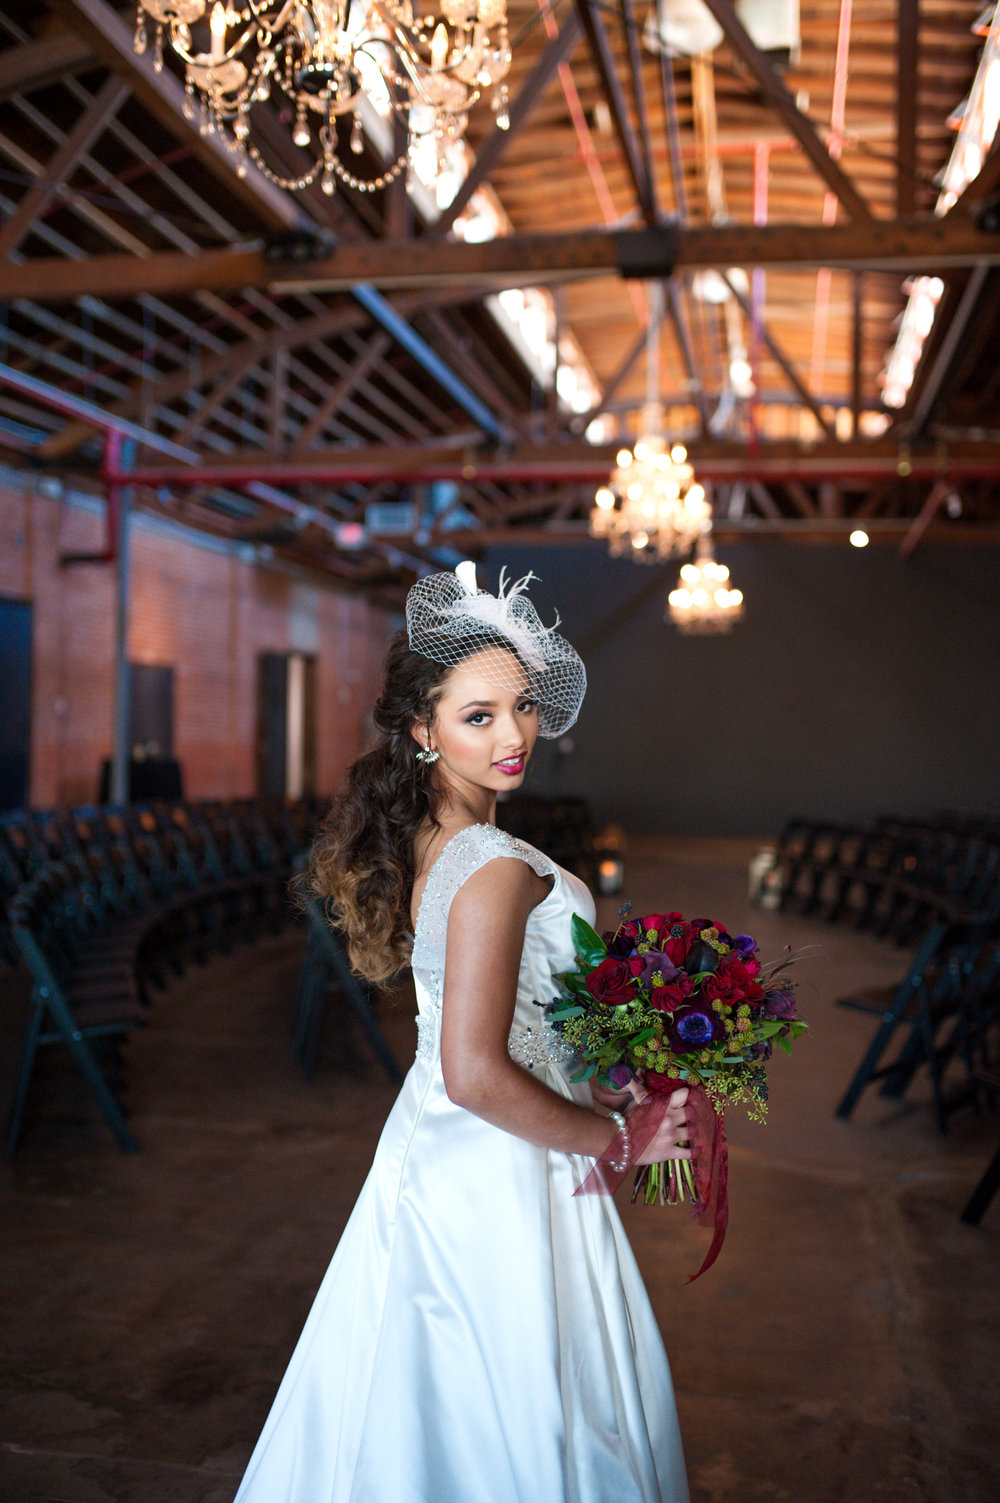 Elegant Industrial Wedding Inspiration Shoot Celebrating Black Love in Arizona by Erika Swift of J&E Designs